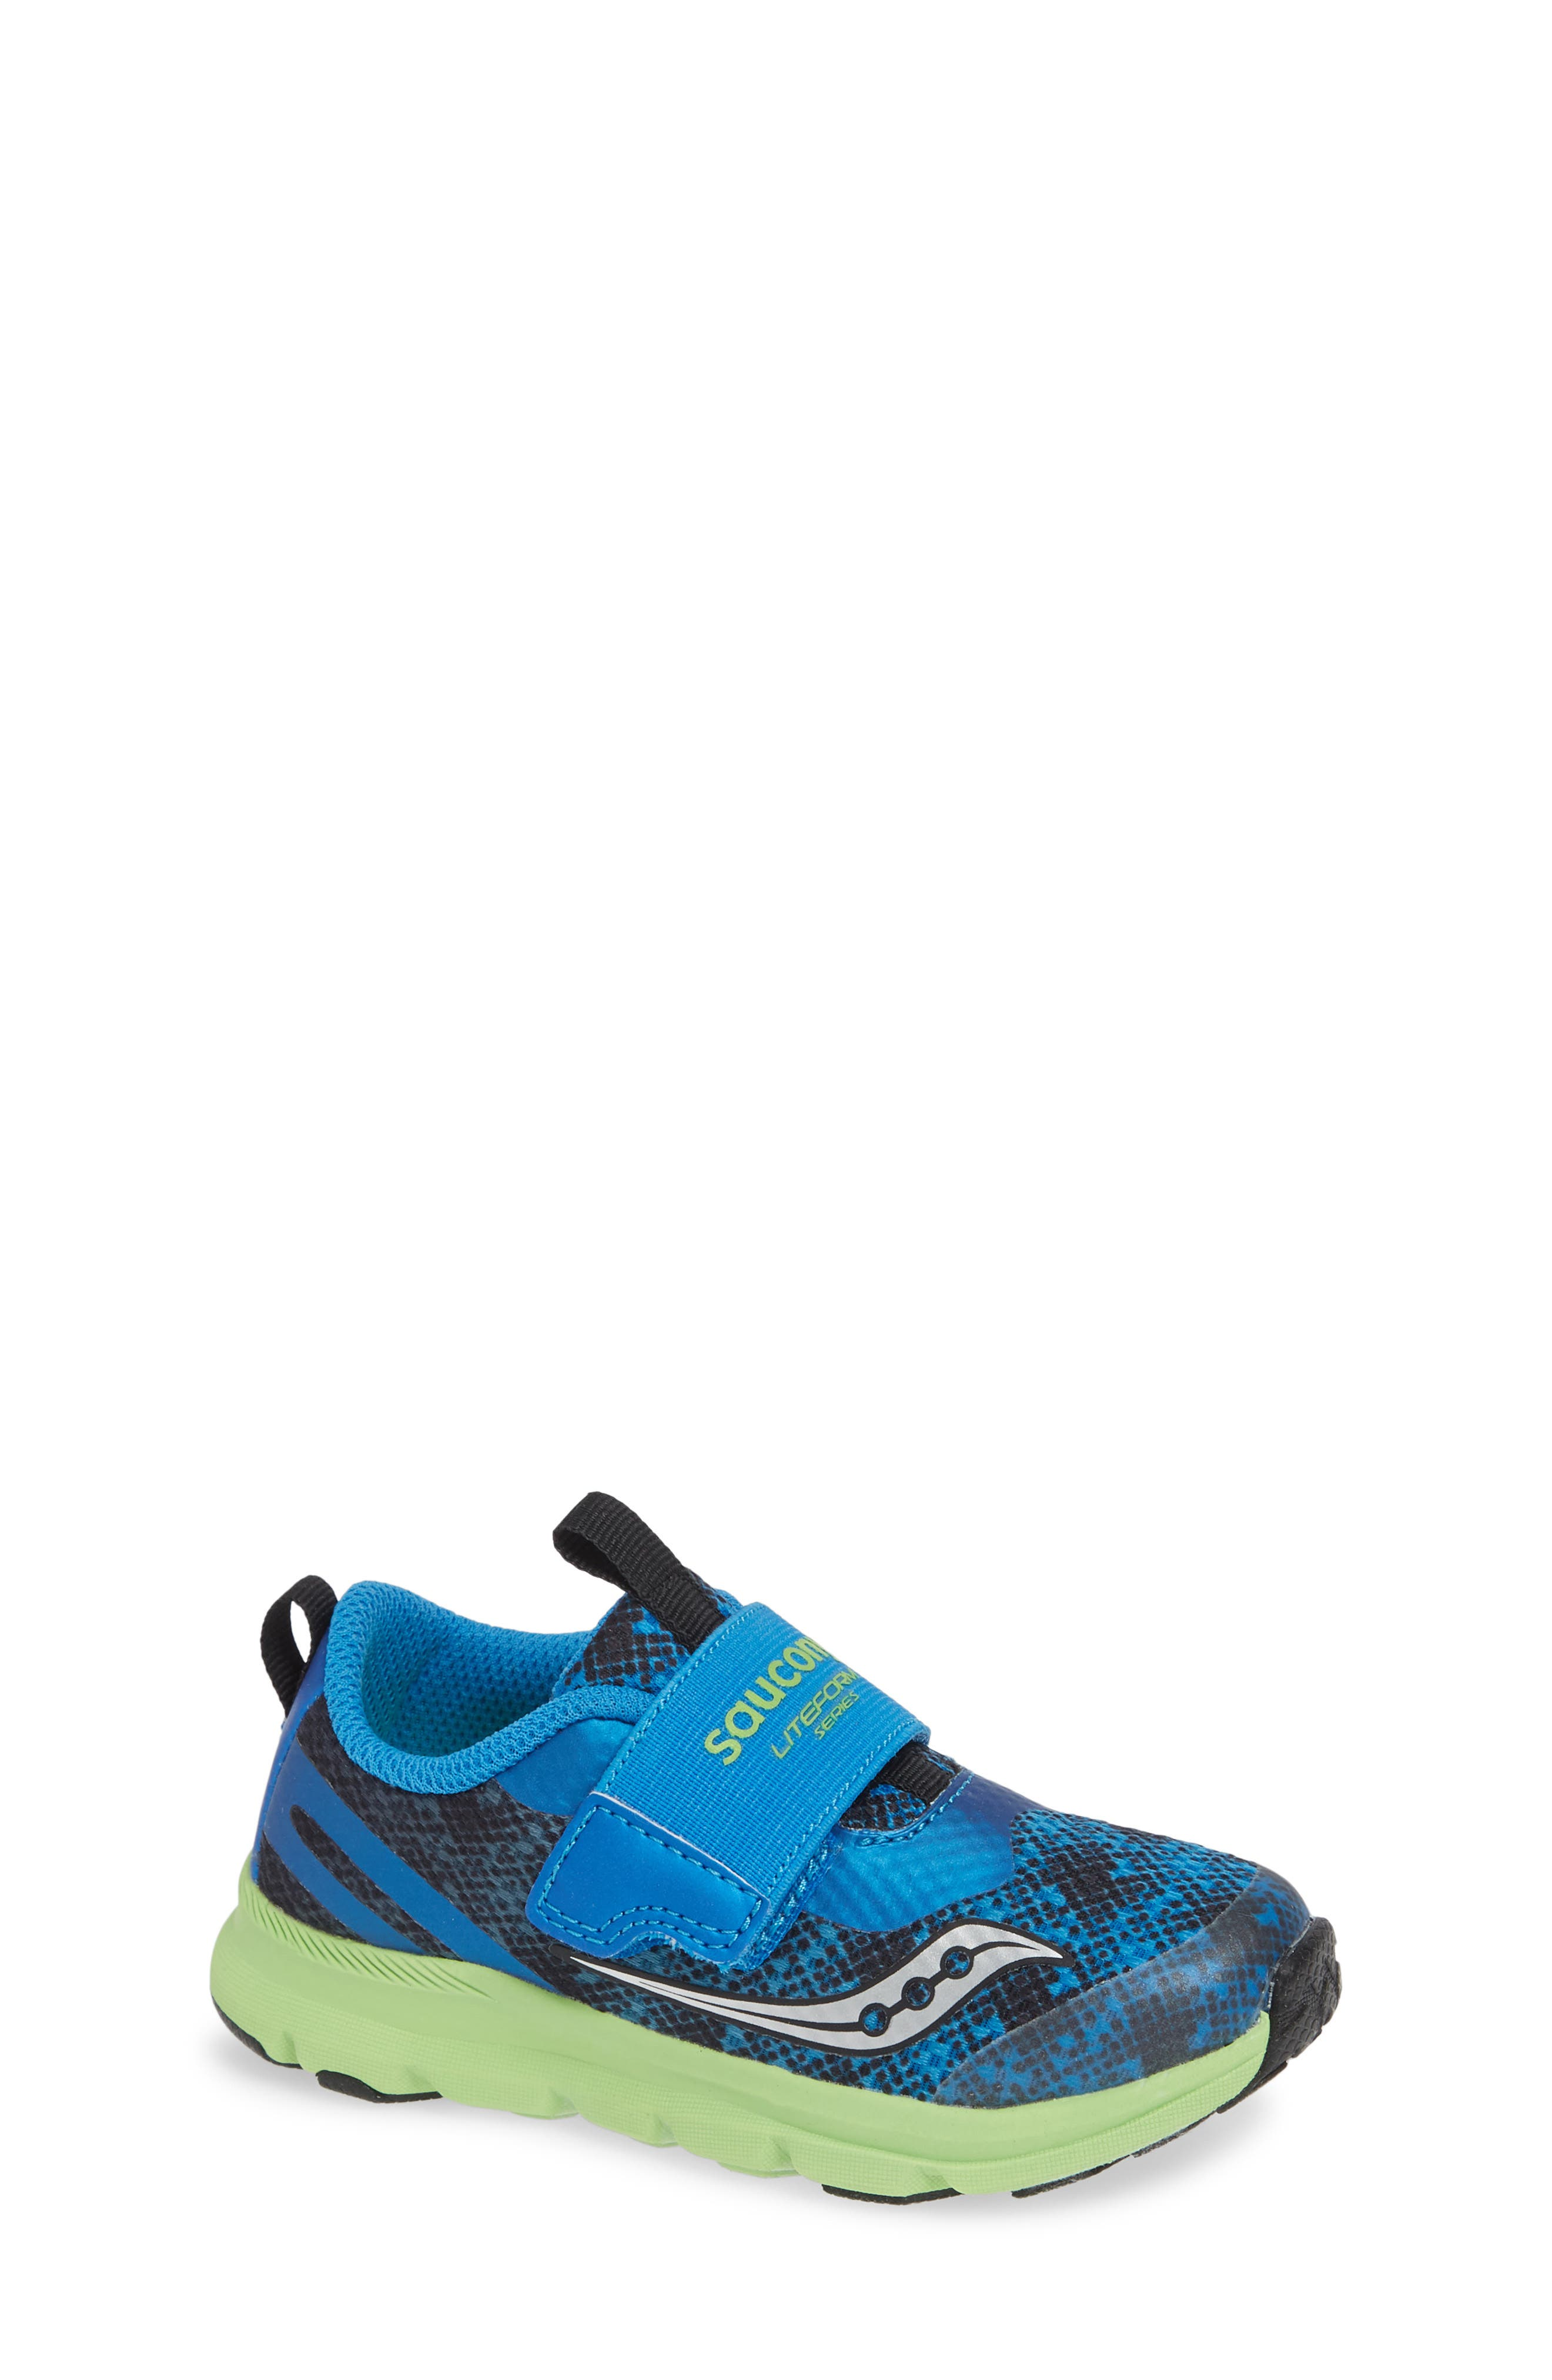 Baby Liteform Sneaker,                             Main thumbnail 1, color,                             BLUE/ GREEN